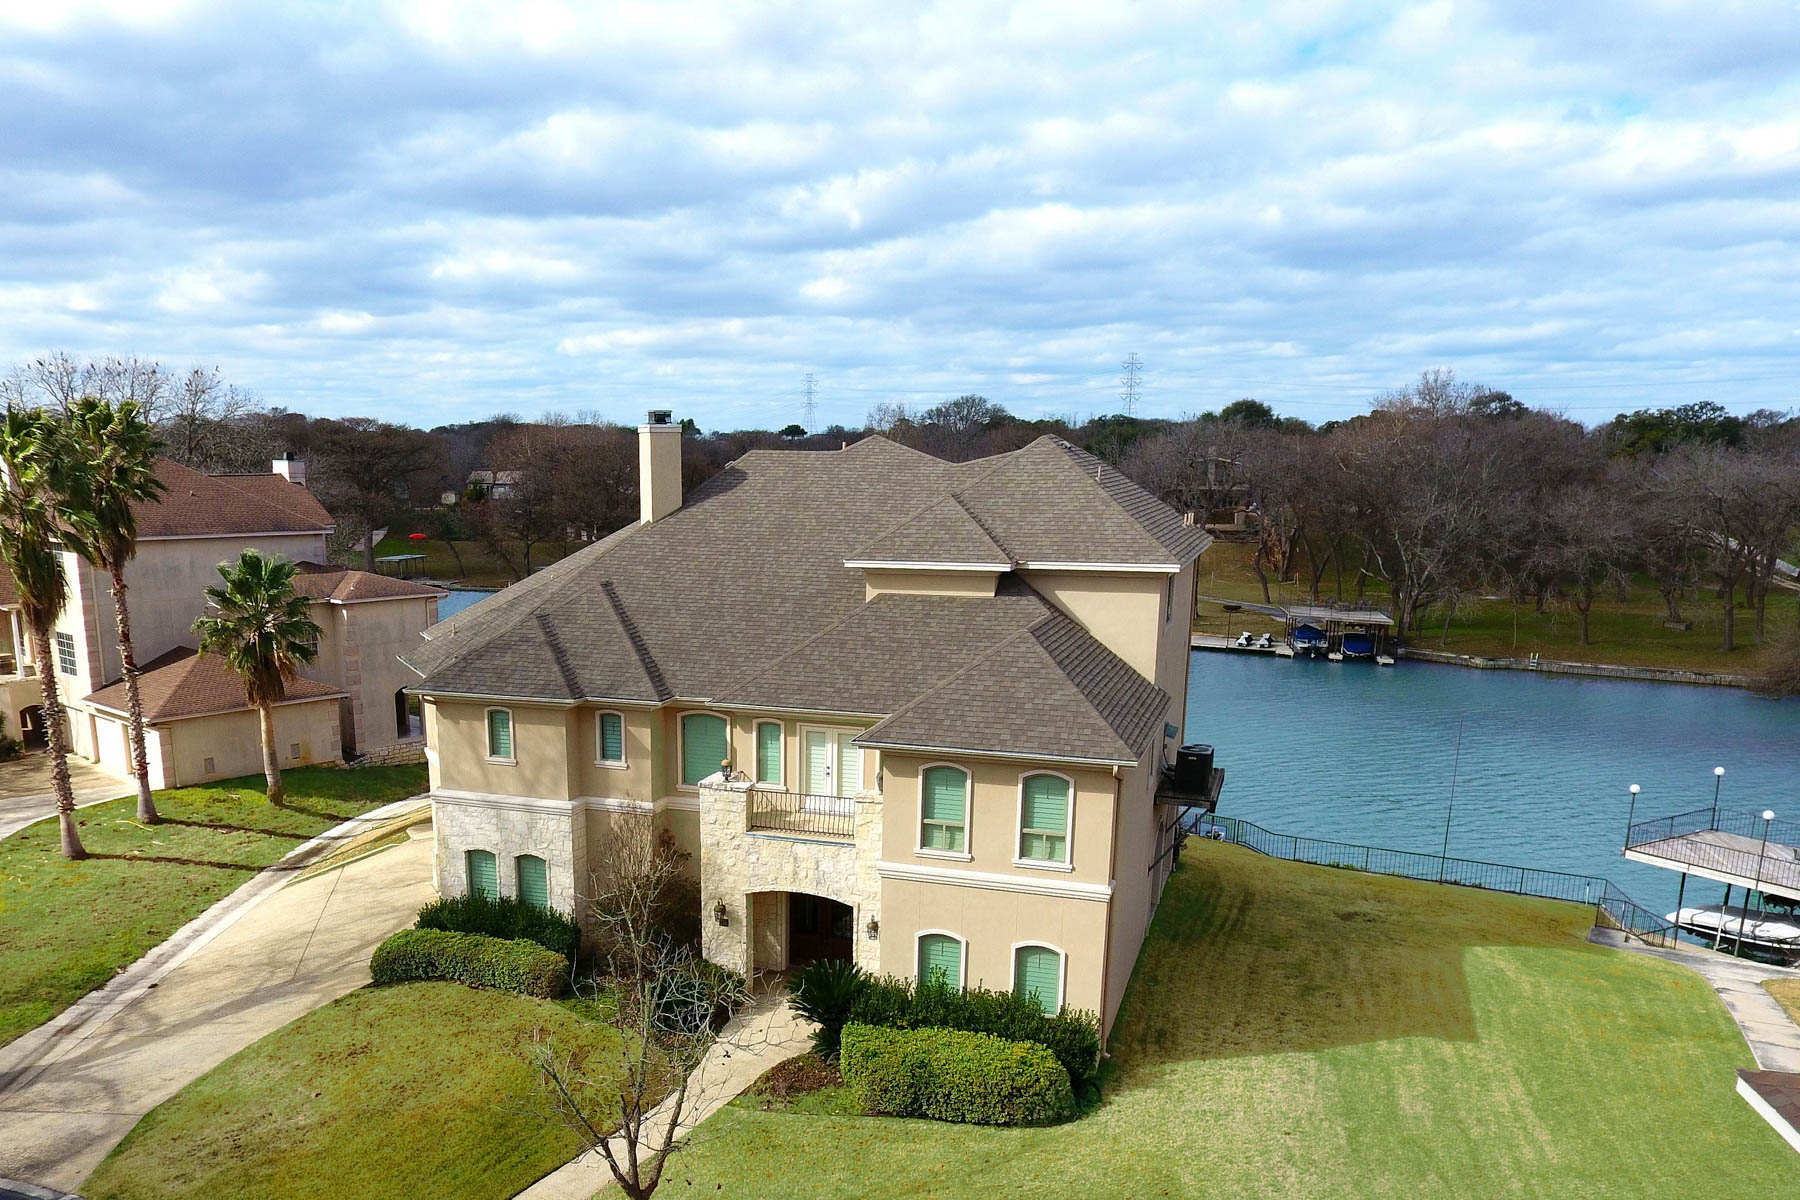 Single Family Home for Sale at Breathtaking Waterfront Home on Lake McQueeney 326 Las Hadas Seguin, Texas 78155 United States